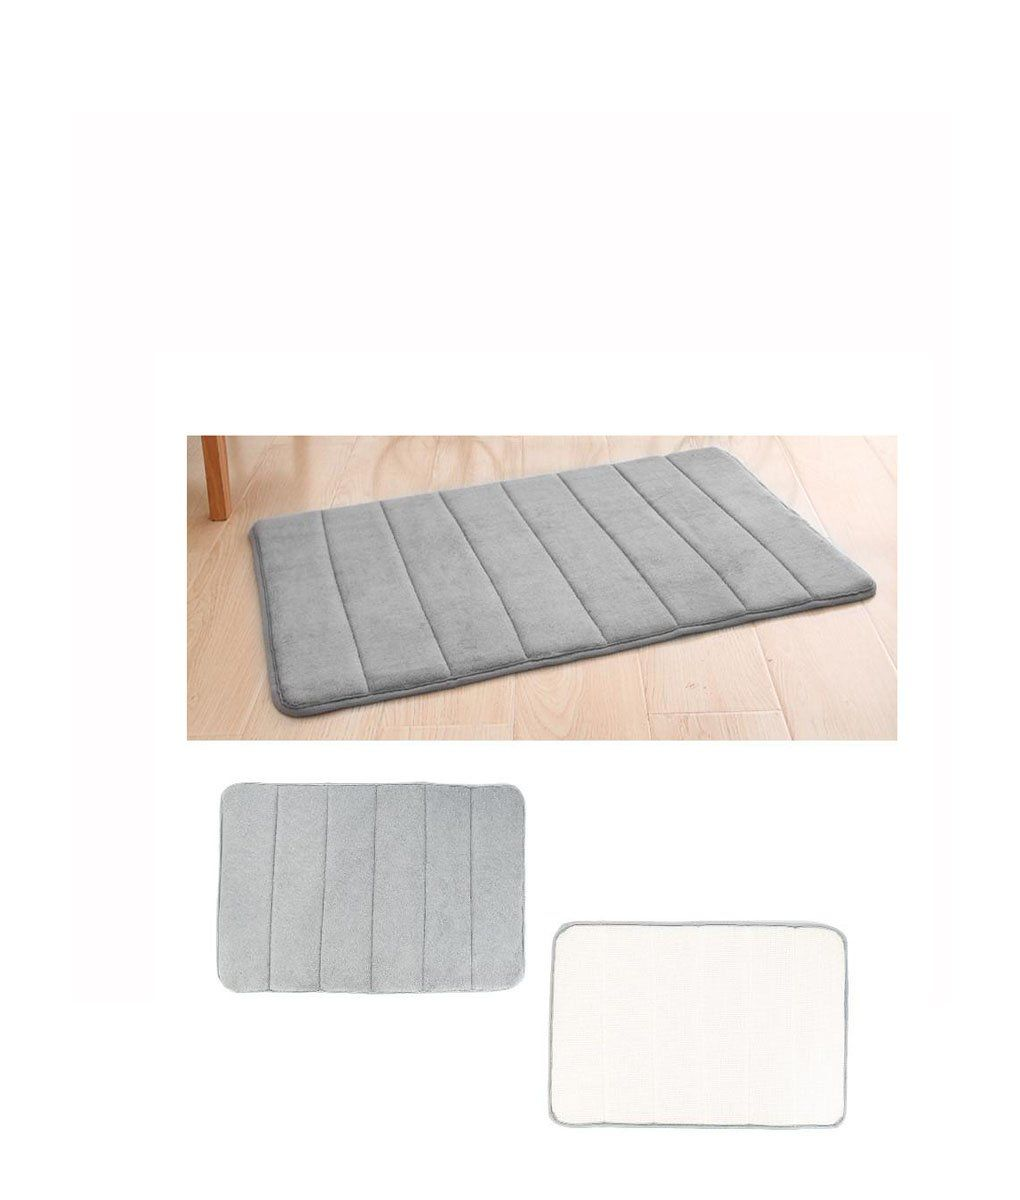 Foam Non Slip Bath Mat Add A Splash Of Colour To Your Bathroom